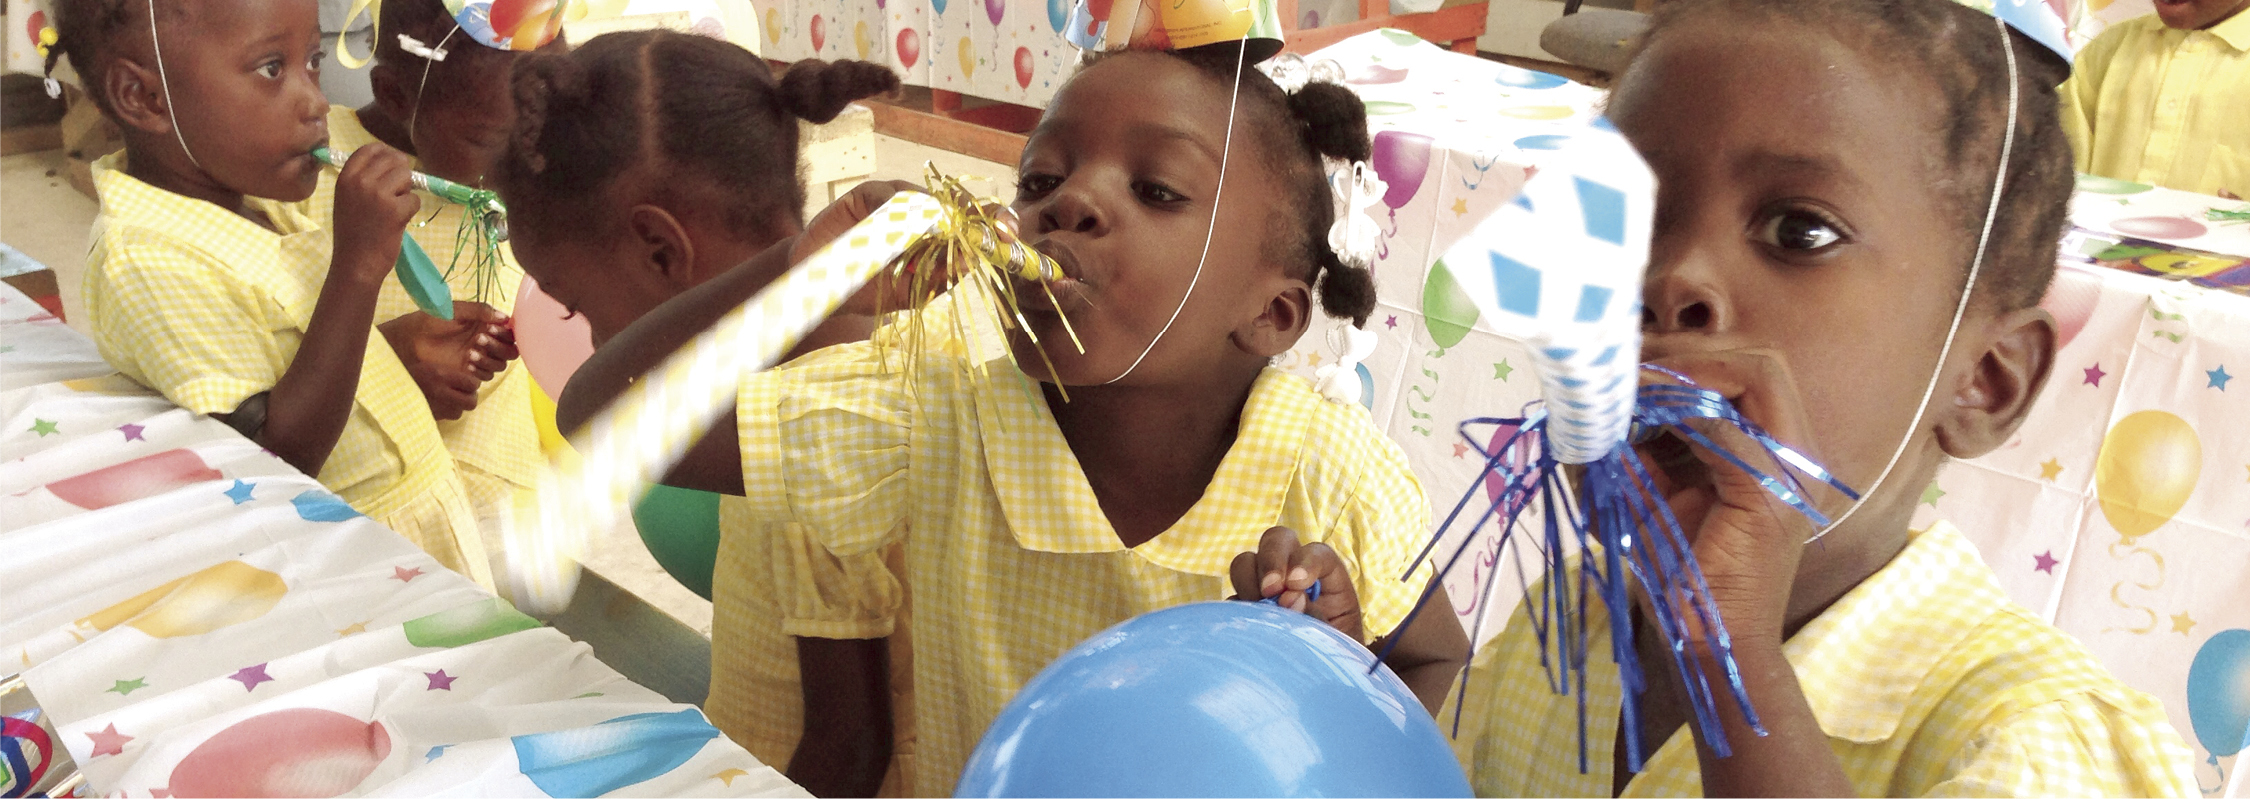 Our goal is to celebrate more fifth birthdays at New Missions, and rejoice in seeing God change the lives of these children.